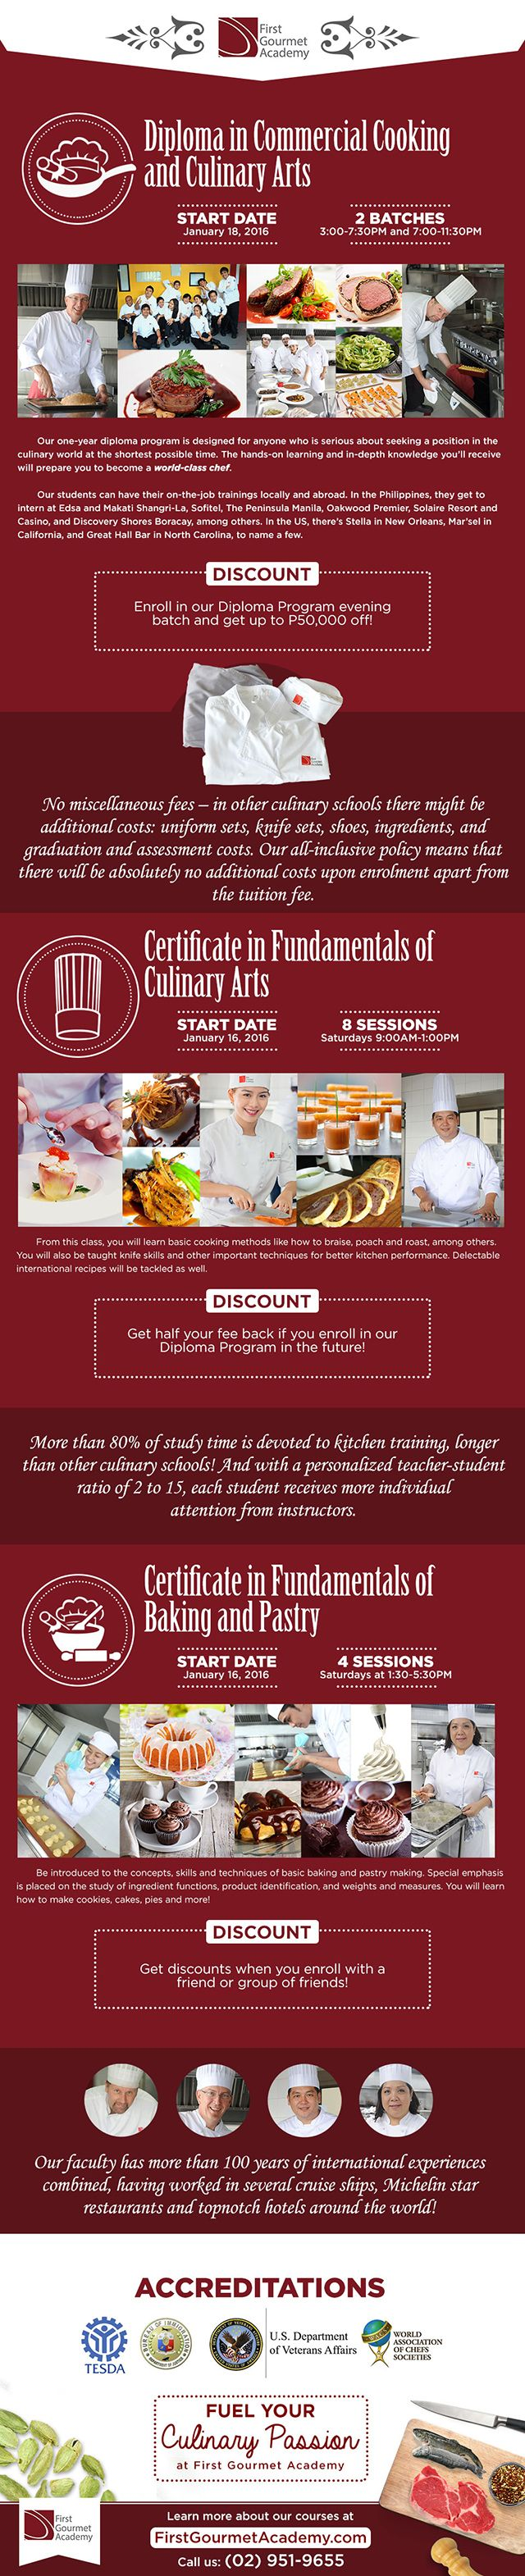 This is an infographic on First Gourmet Academy's Culinary Arts courses for January 2016